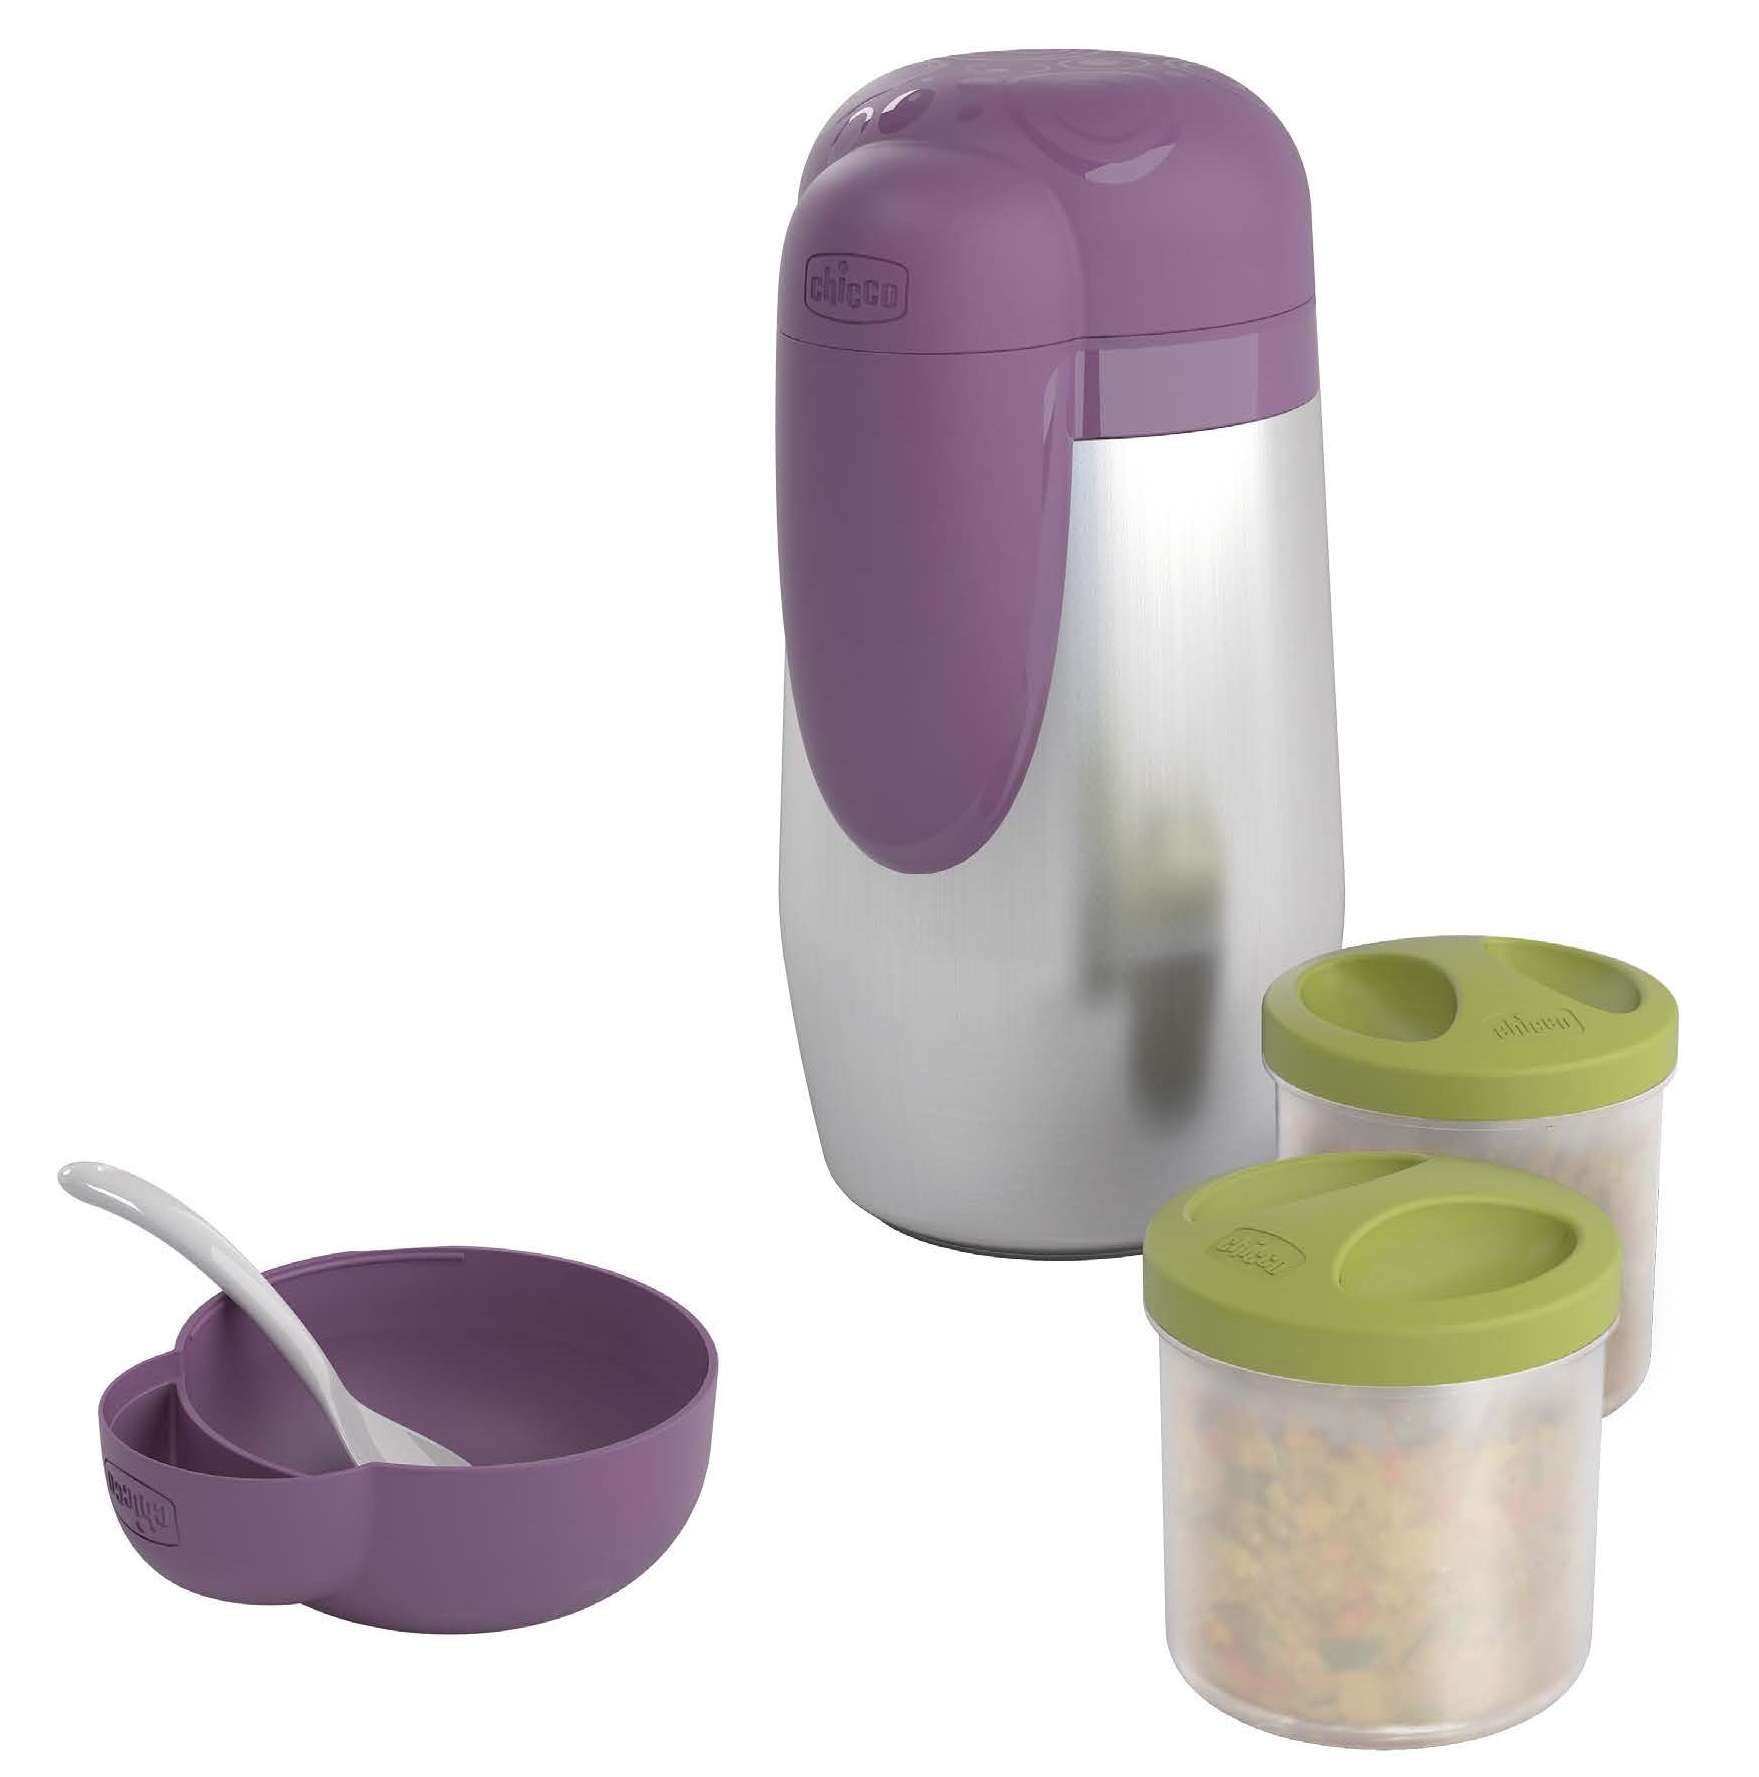 Thermal Bottle Holder Amp Food Container Chicco